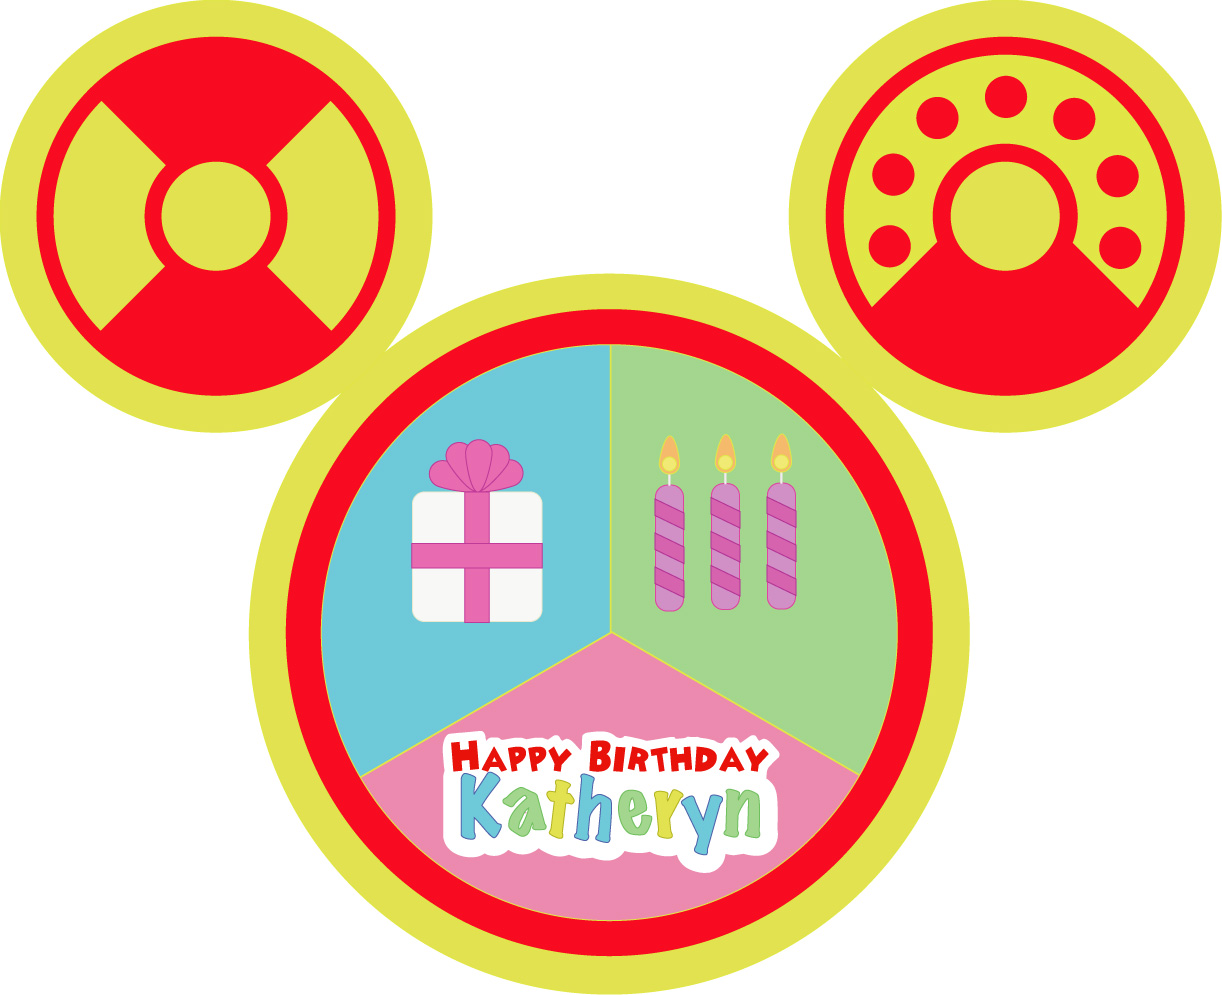 mickey mouse toodles clipart - photo #14